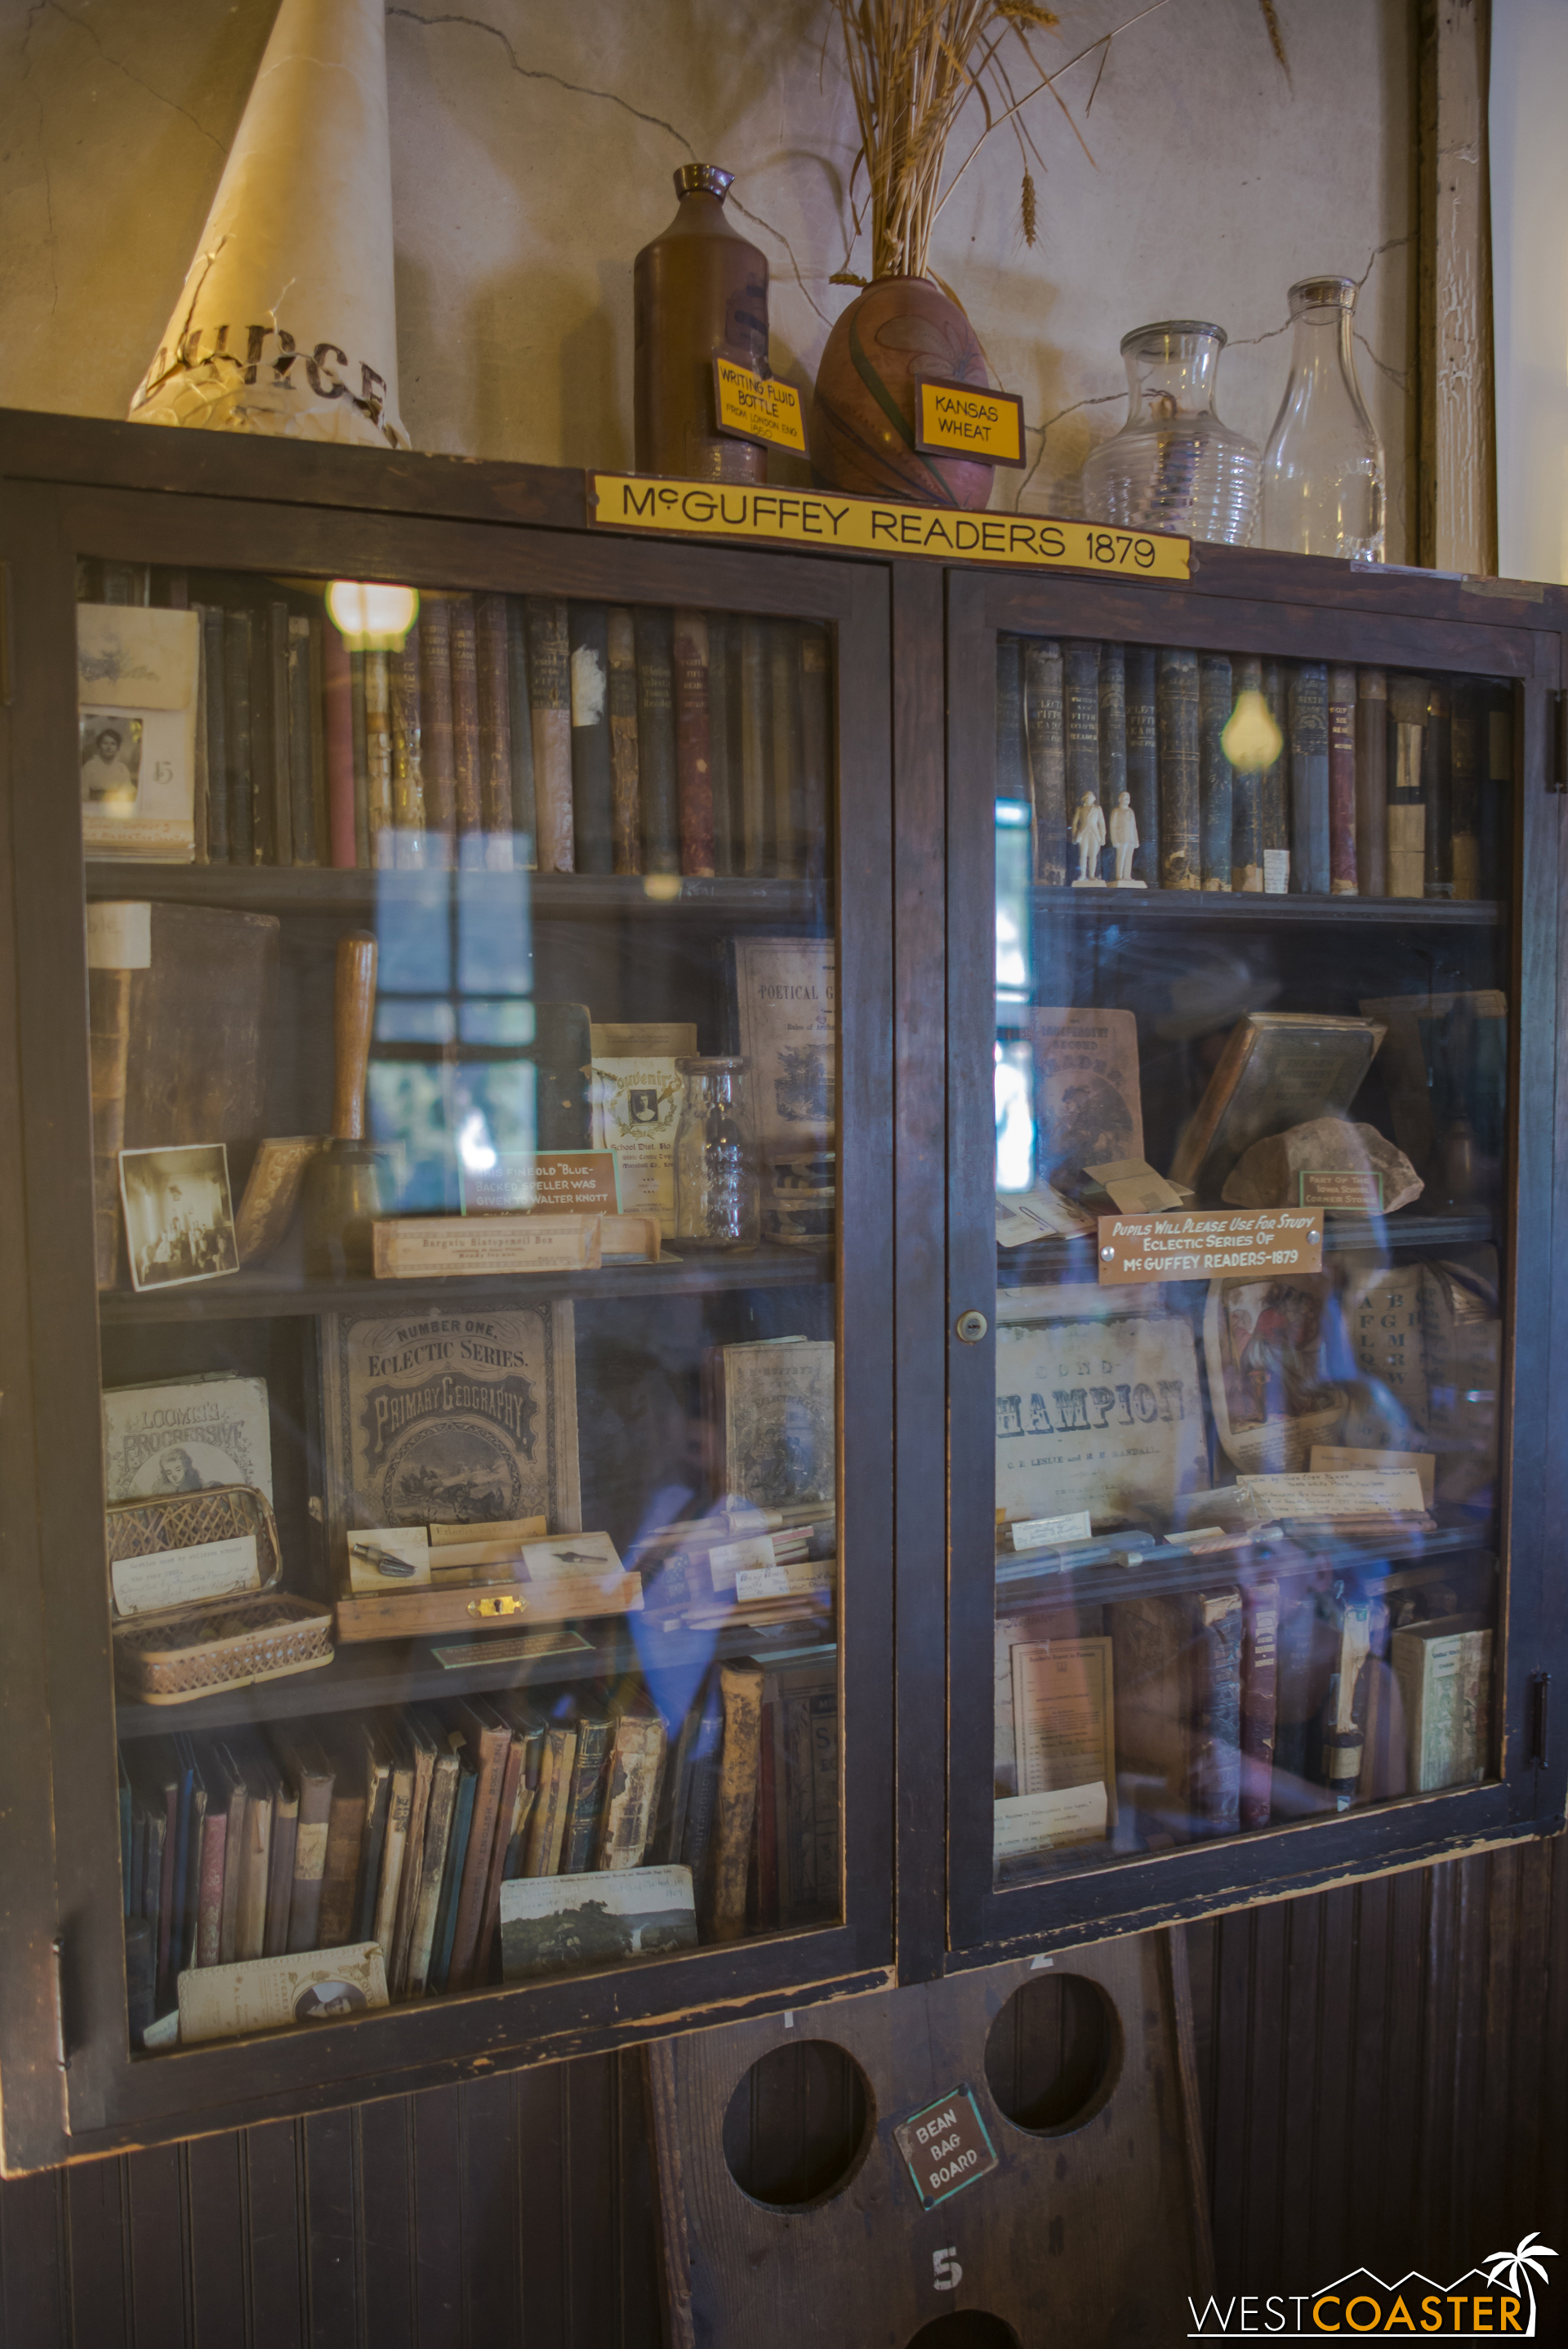 Bookcases and furnishings are period authentic.